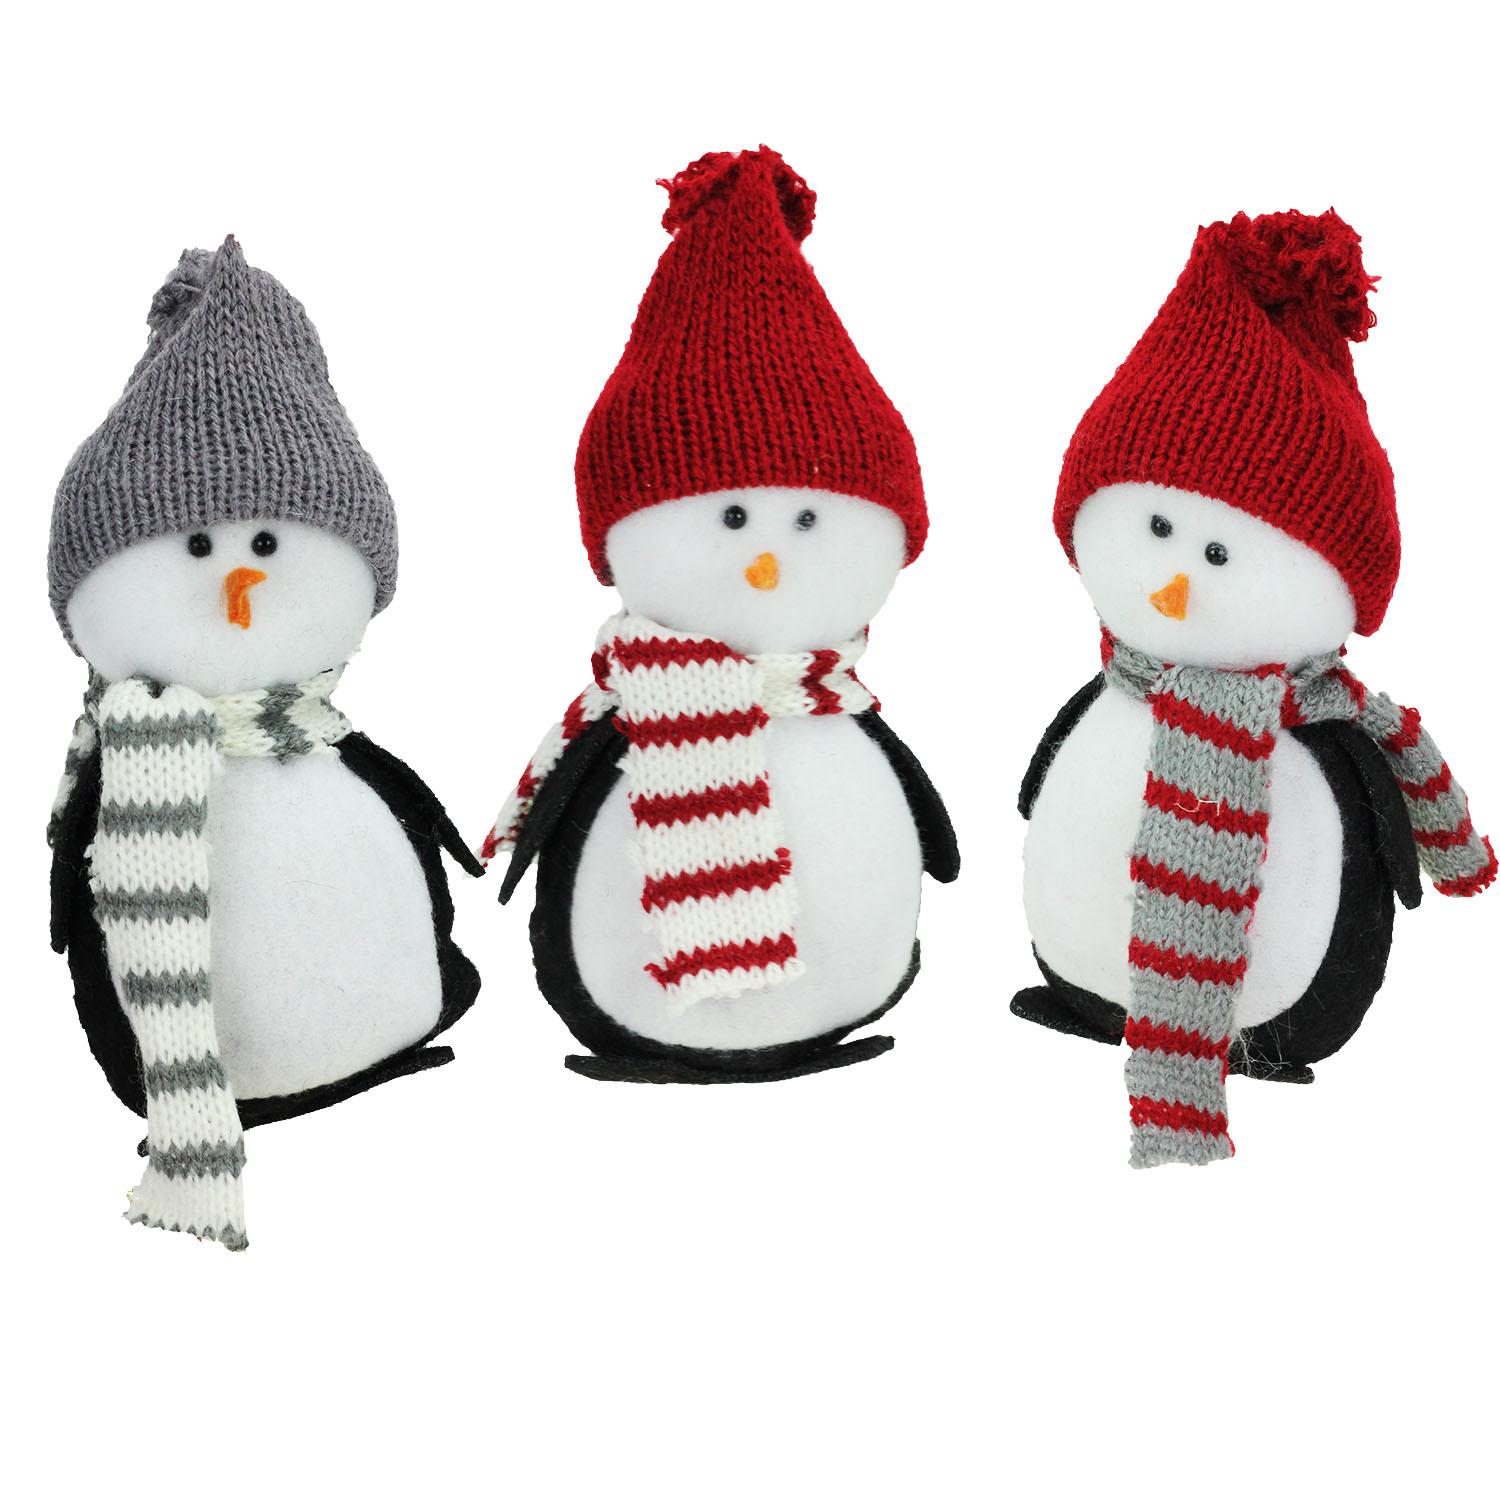 ''Set of 3 Charming HOLIDAY Penguin Christmas Ornament or Tabletop Decorations 6''''''